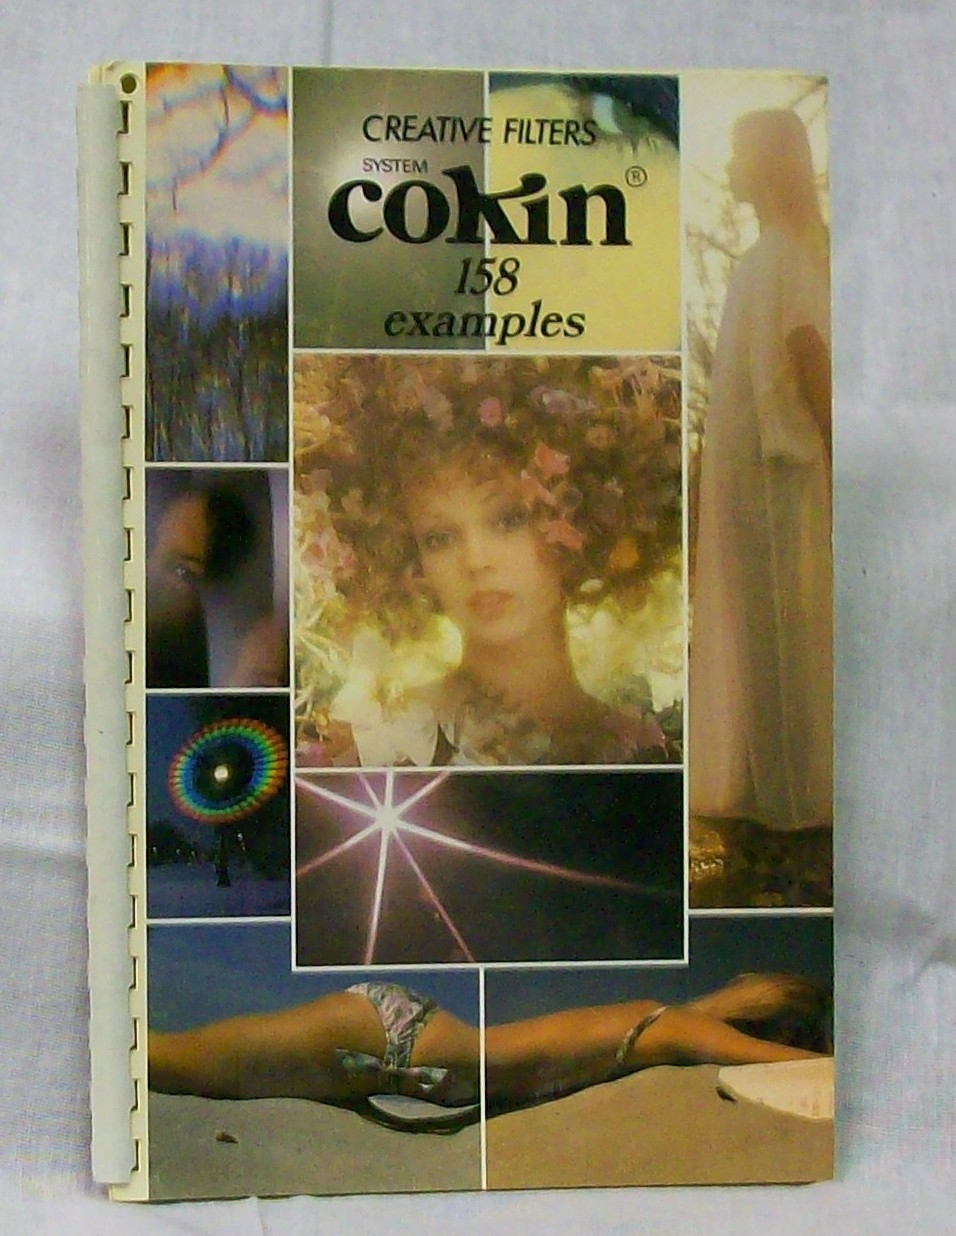 Cokinfilters